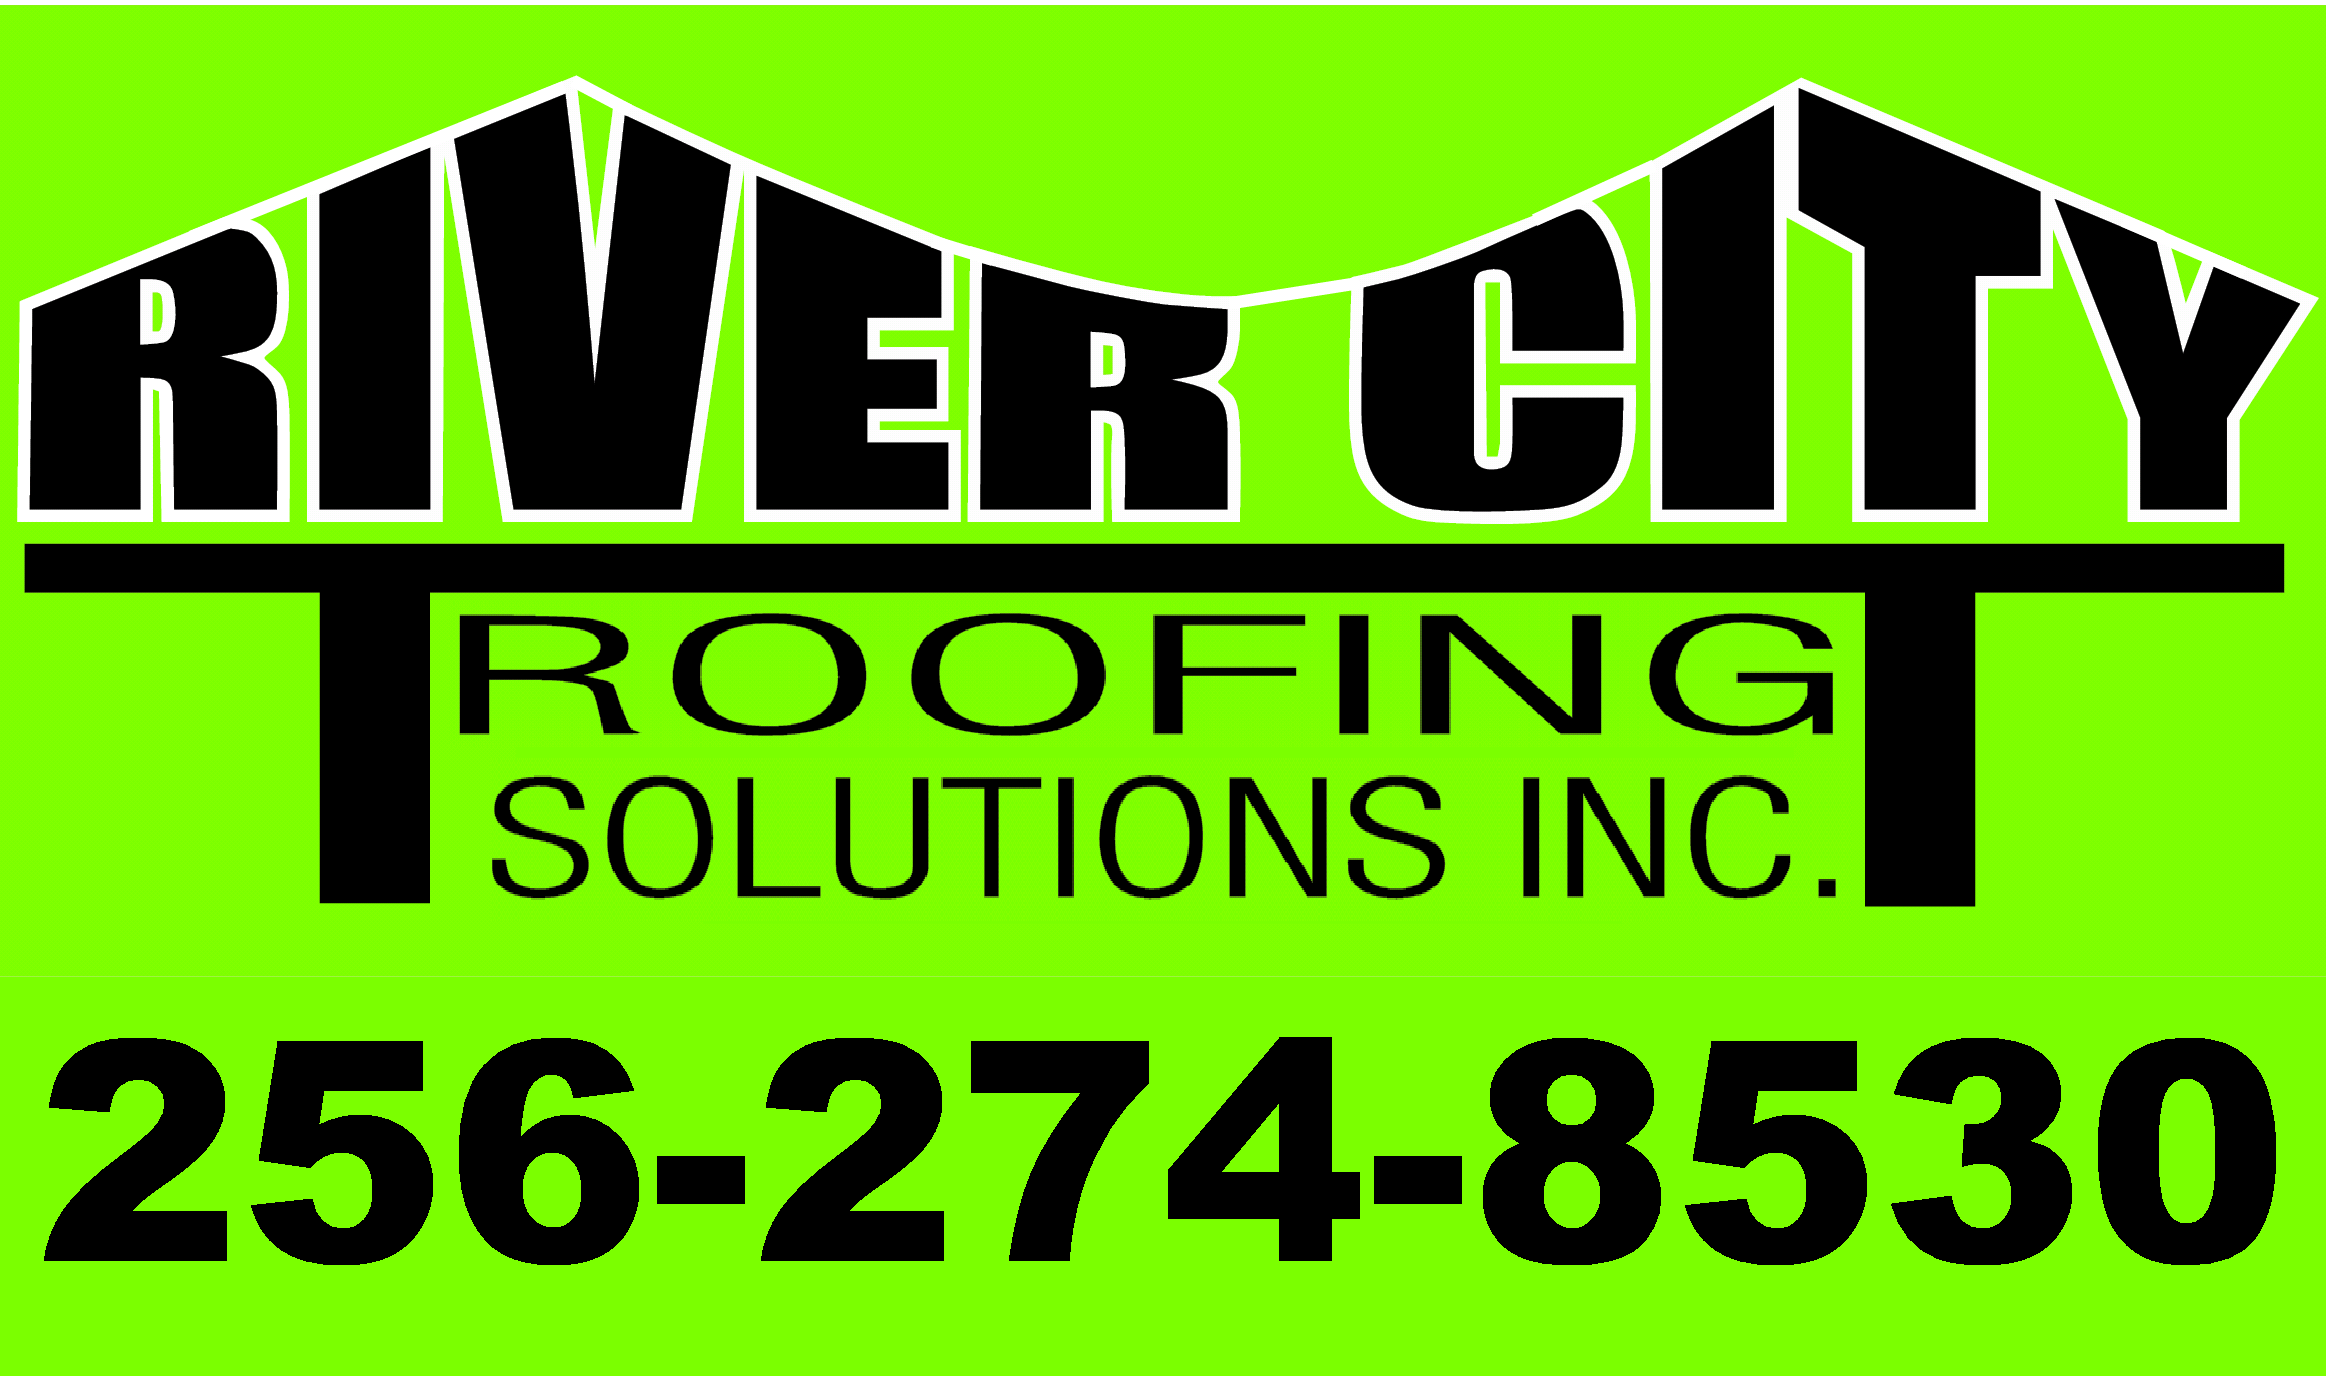 Deals From River City Roofing Solutions